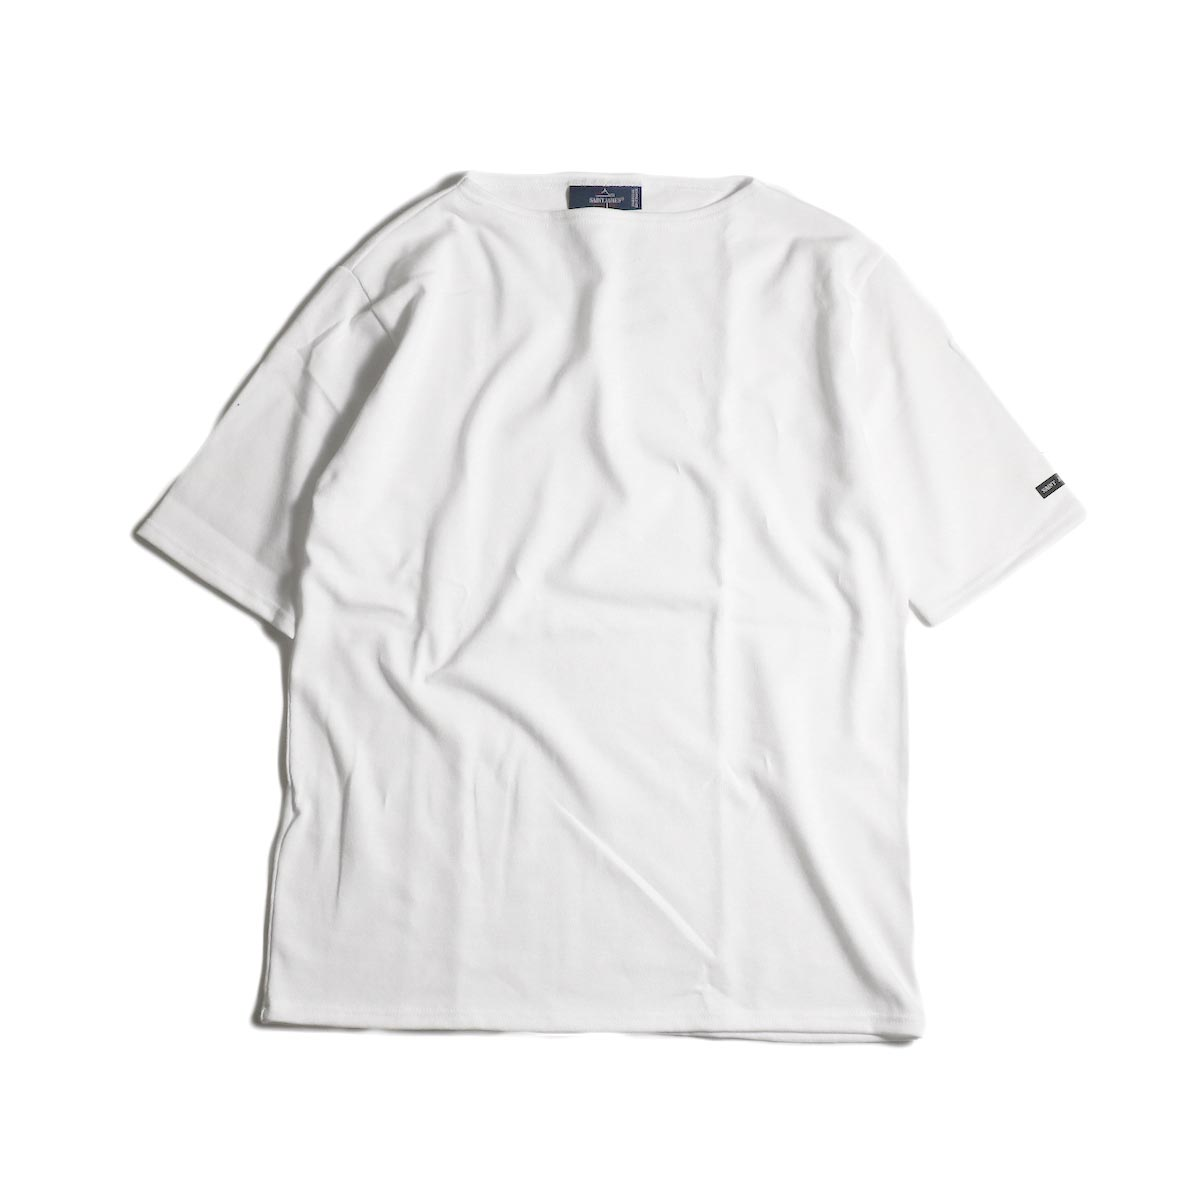 SAINT JAMES / OUESSANT LIGHT SHORT SLEEVE (NEIGE)